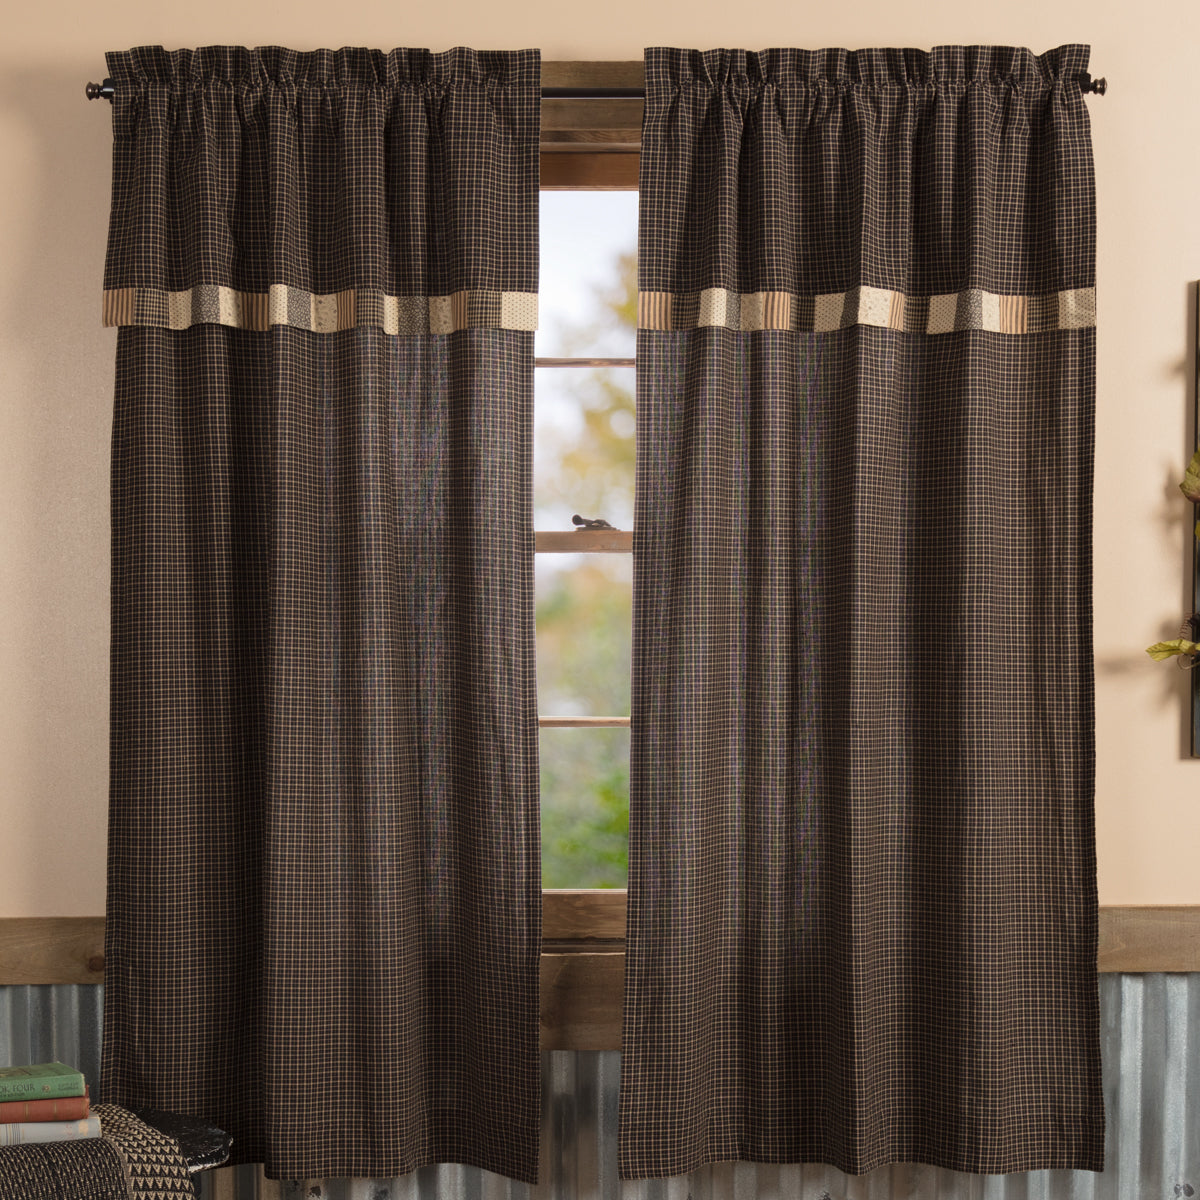 Kettle Grove Short Panel with Attached Valance Block Border Set of 2 63x36 - Woodrol